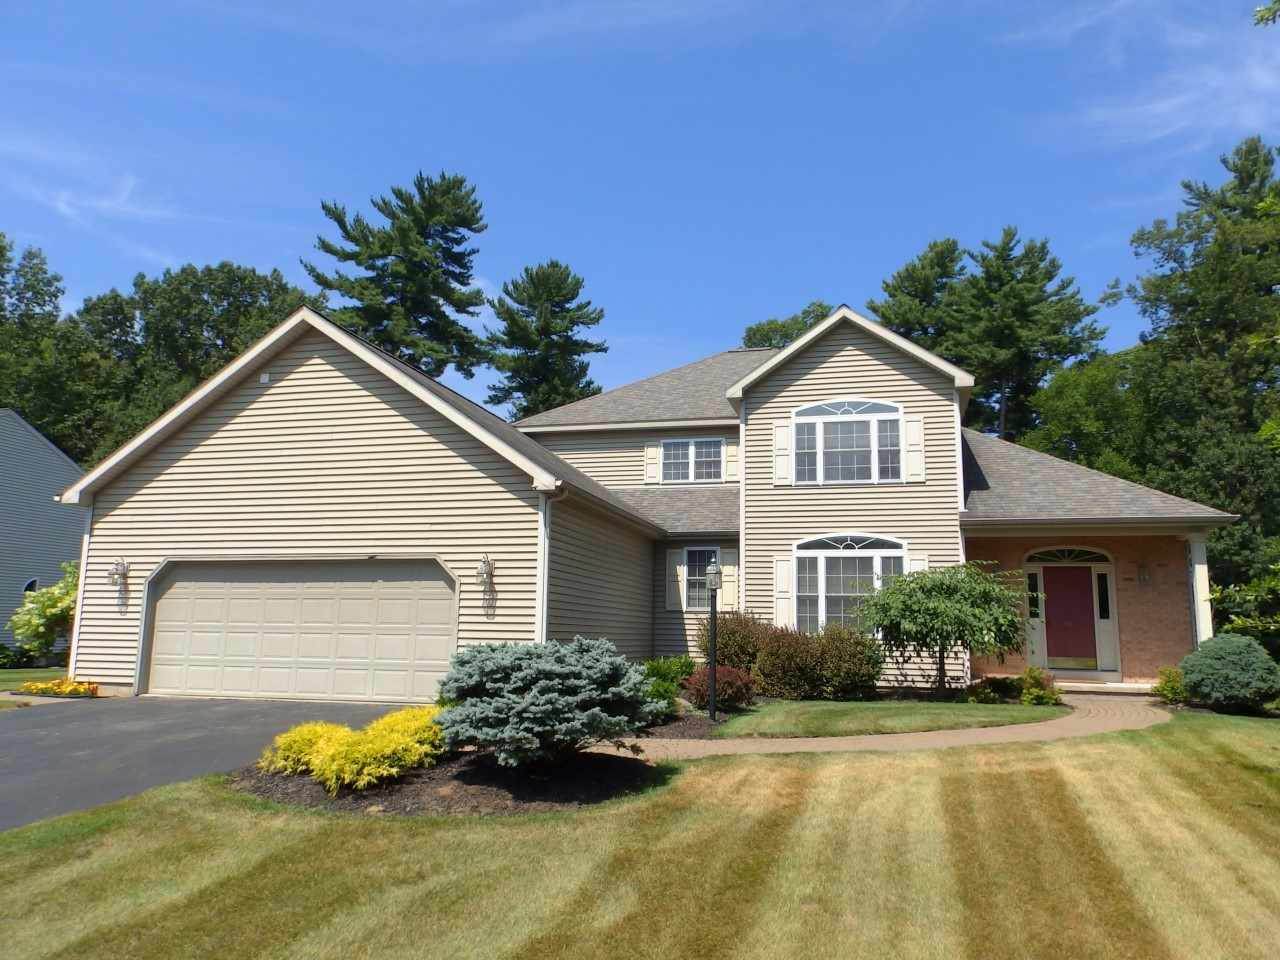 41 Waterview Dr, Saratoga Springs, NY